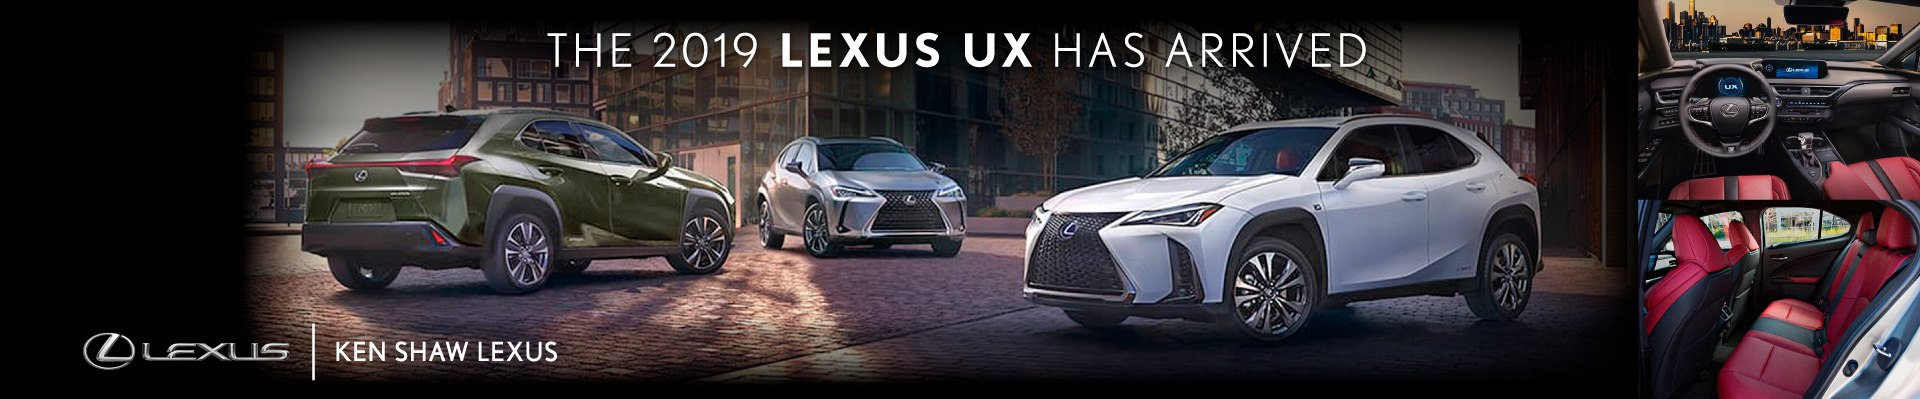 NEW 2019 LEXUS UX Offer AT KEN SHAW LEXUS IN TORONTO ONTARIO